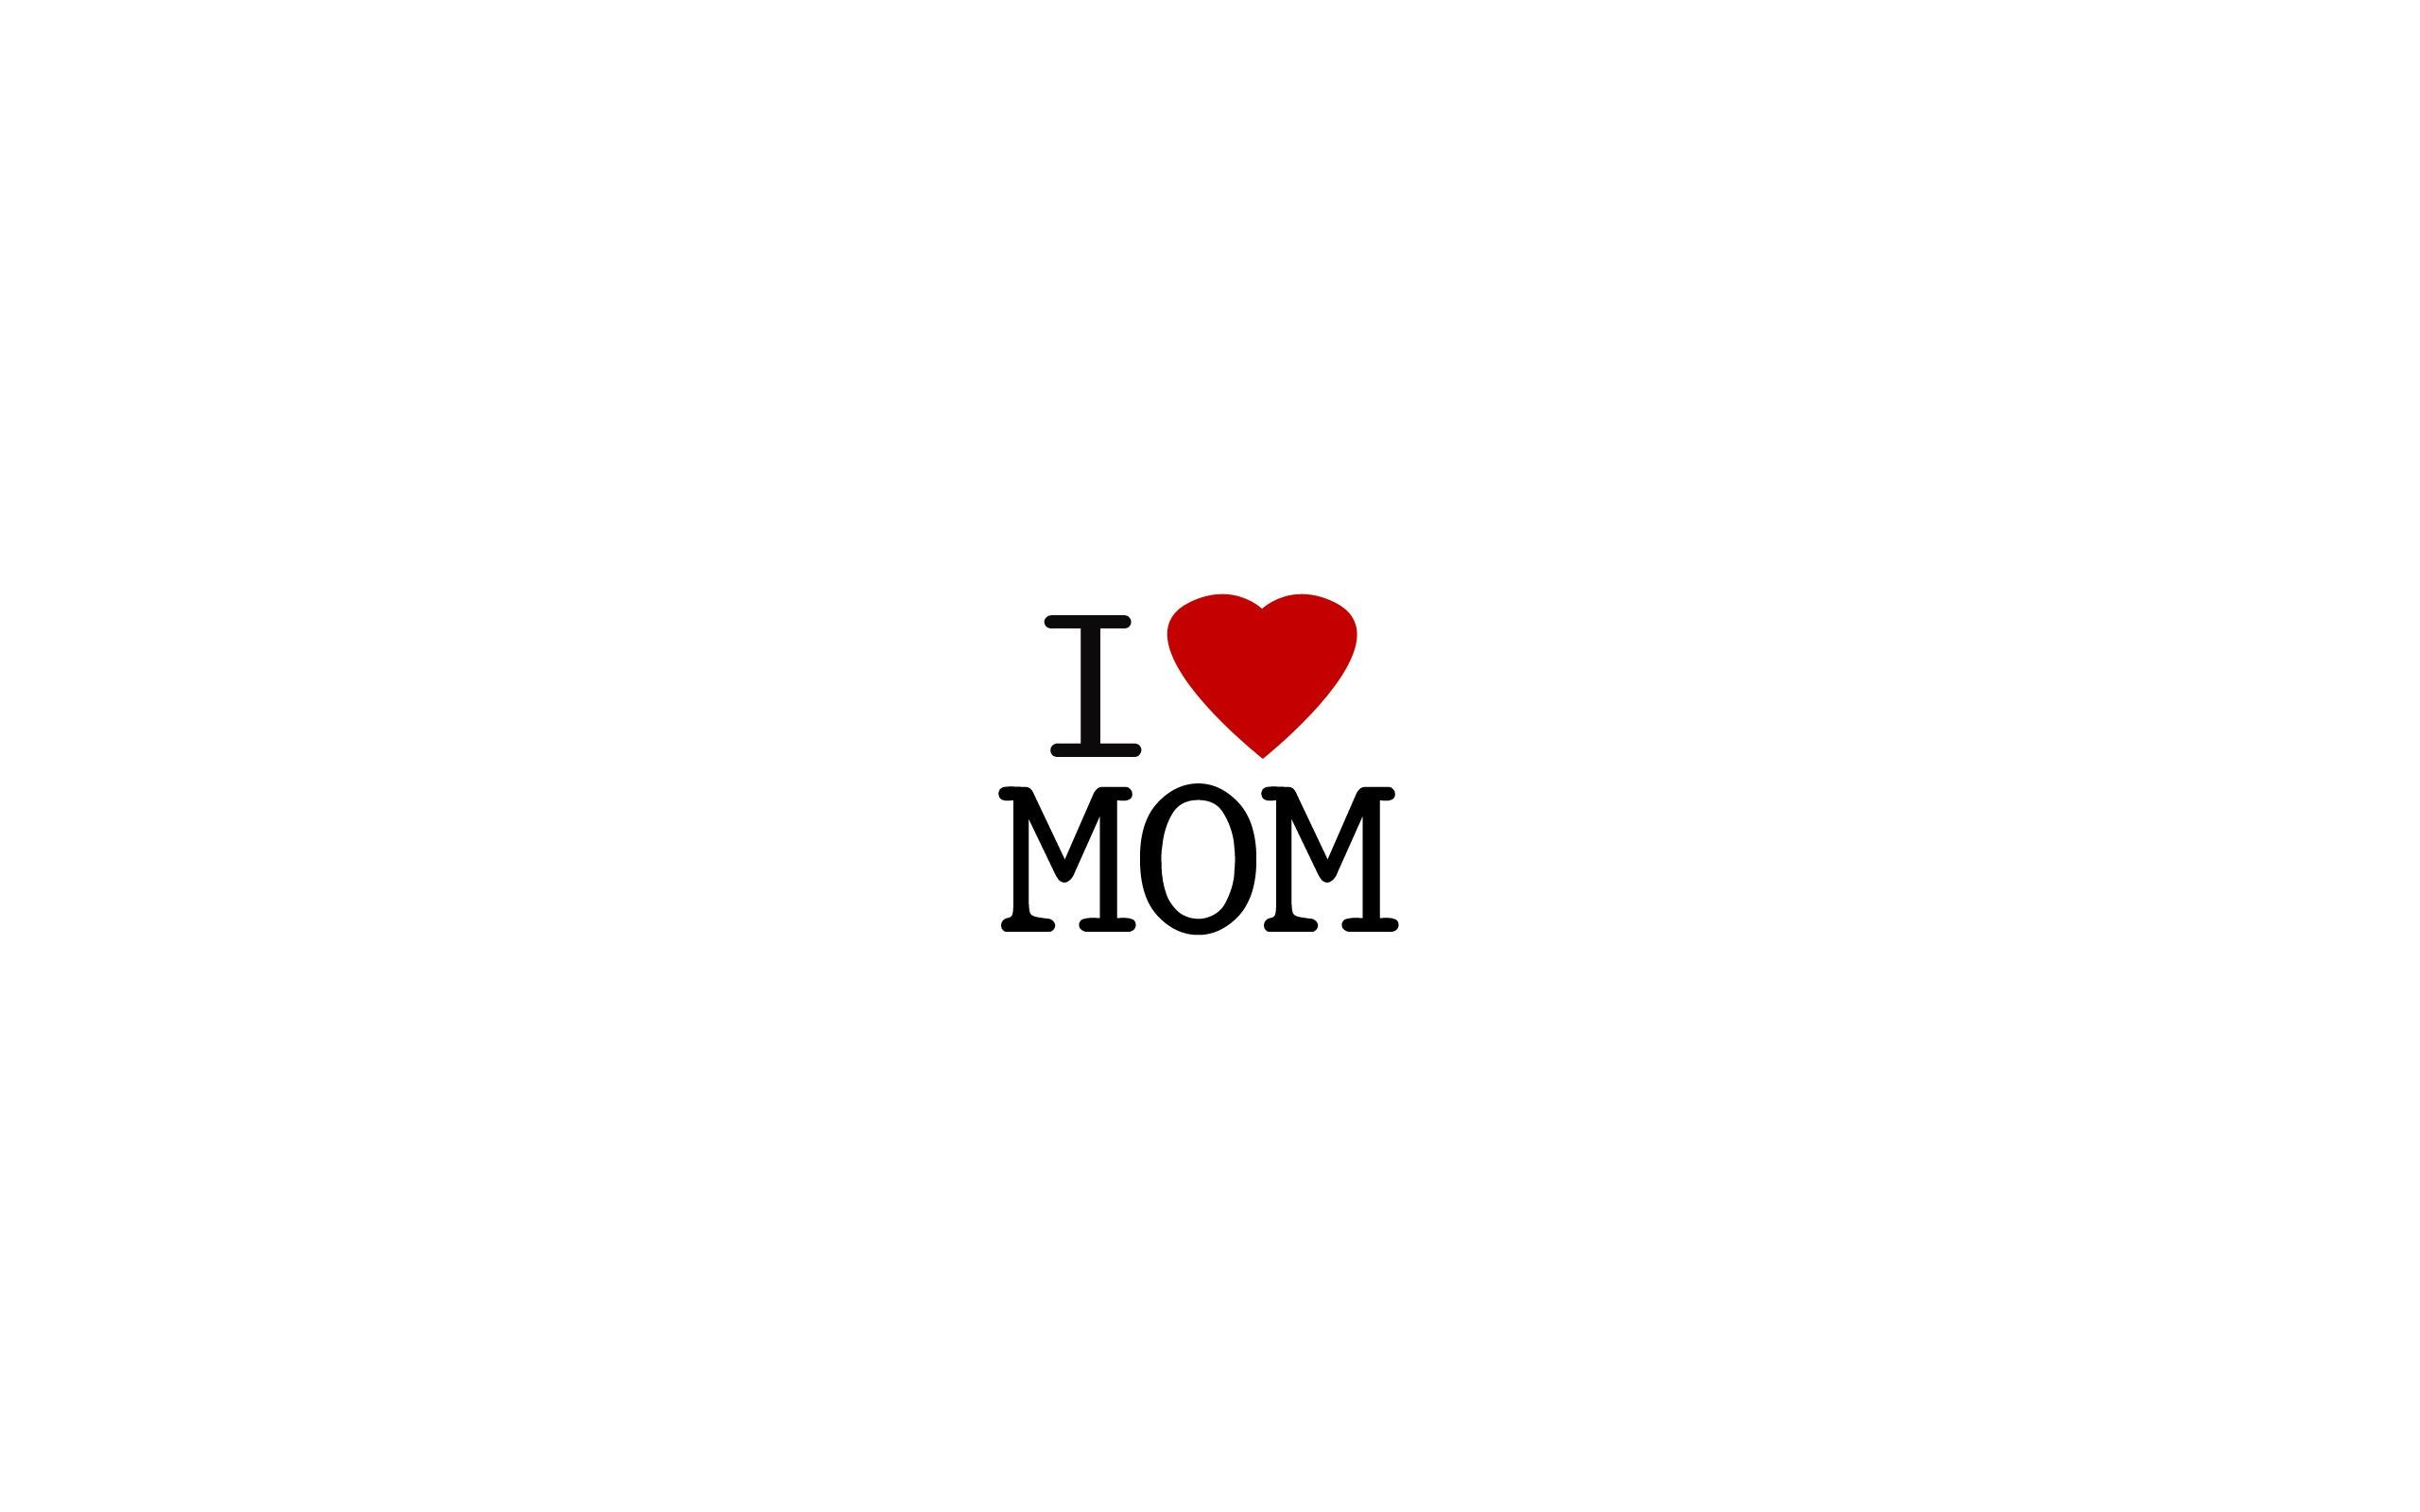 I Love You Mom Images for Facebook